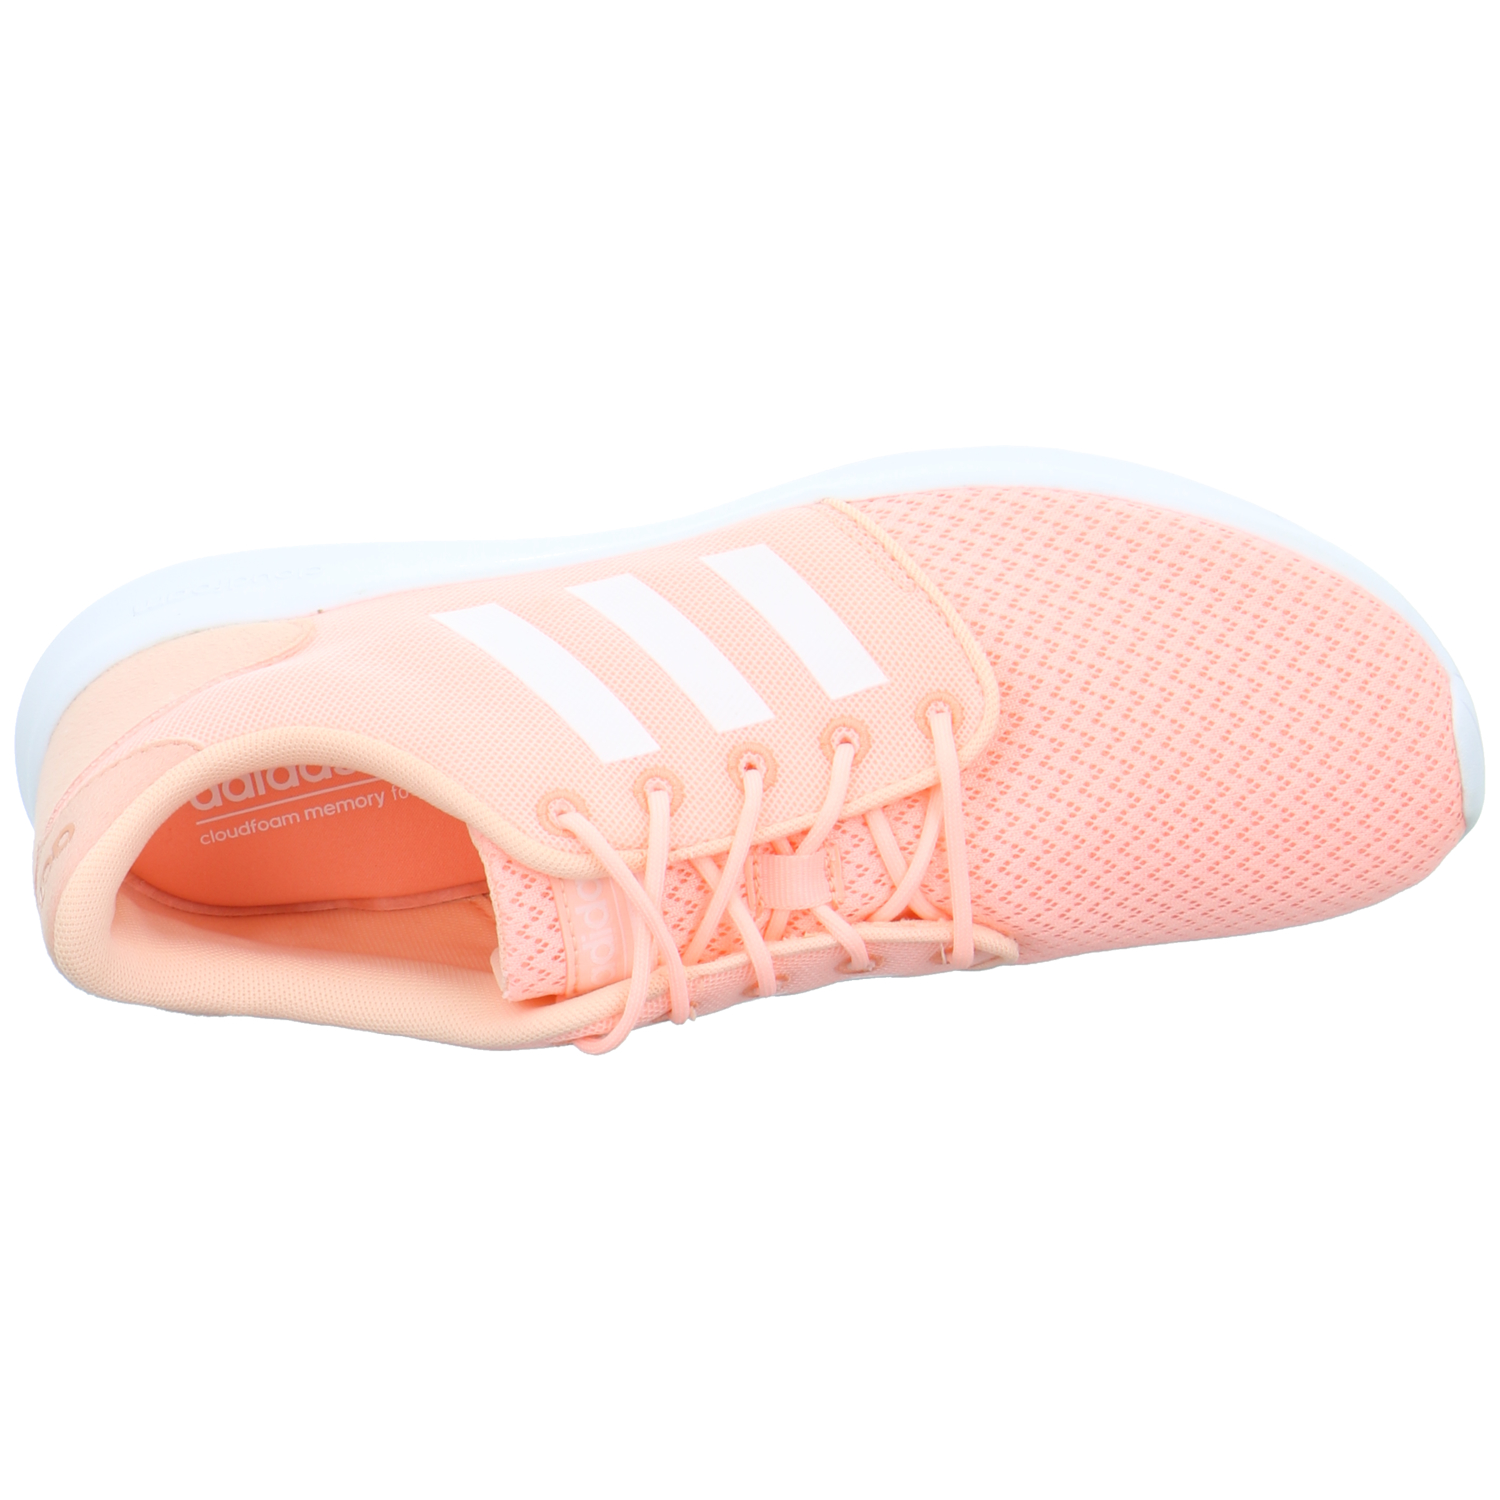 adidas cloudfoam qt racer w damen sneaker textil rosa. Black Bedroom Furniture Sets. Home Design Ideas